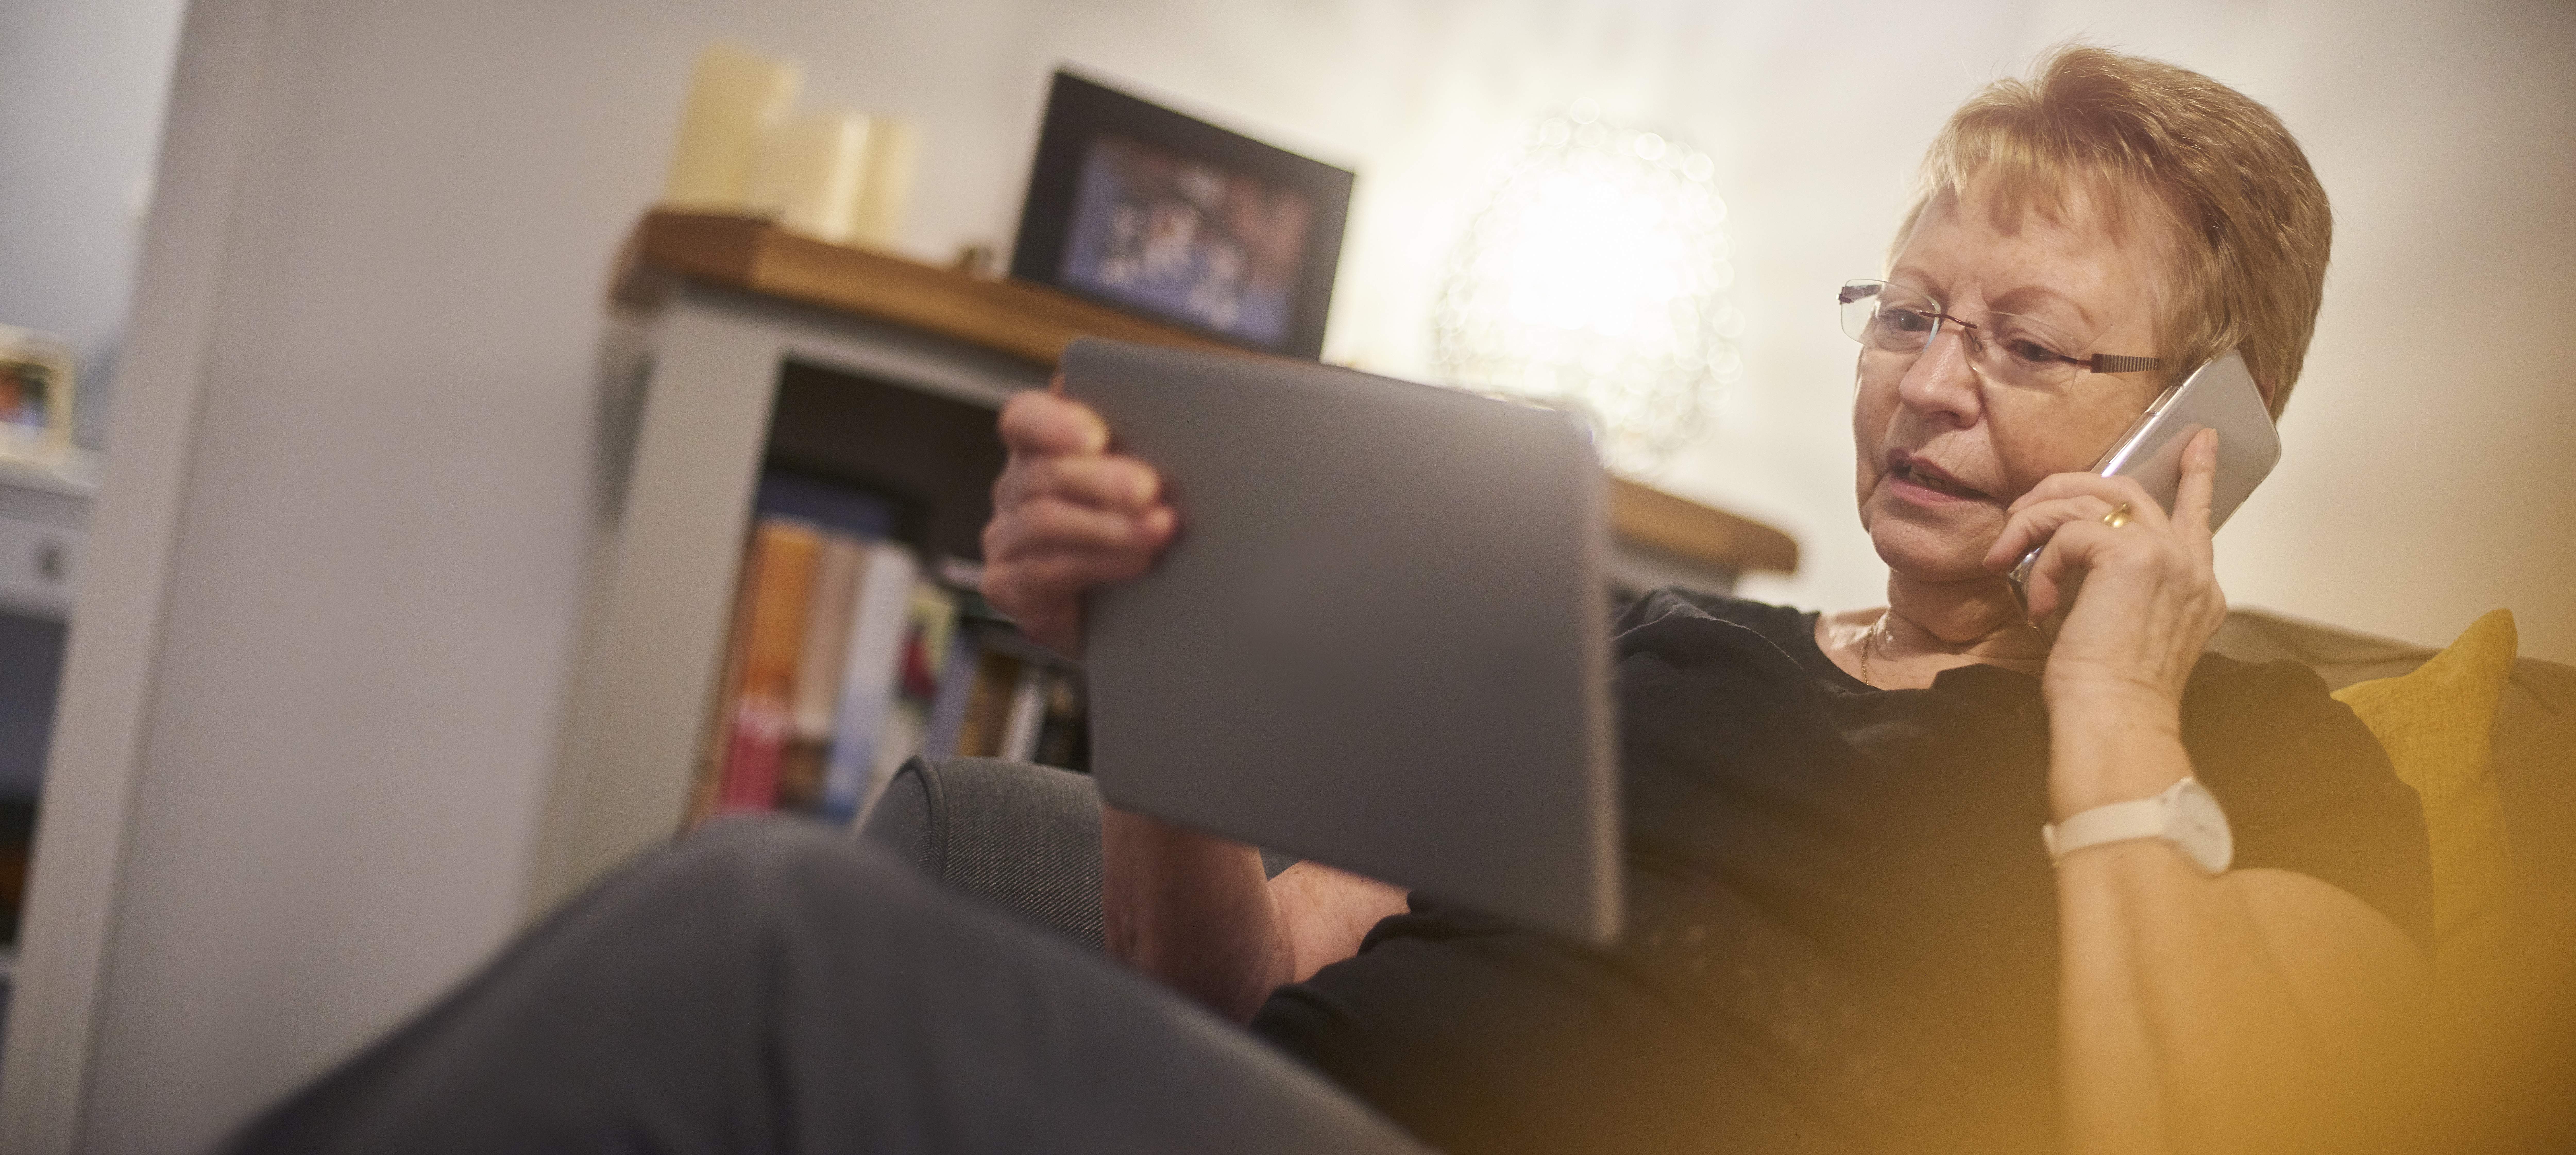 A senior woman on the phone and using digital tablet at home